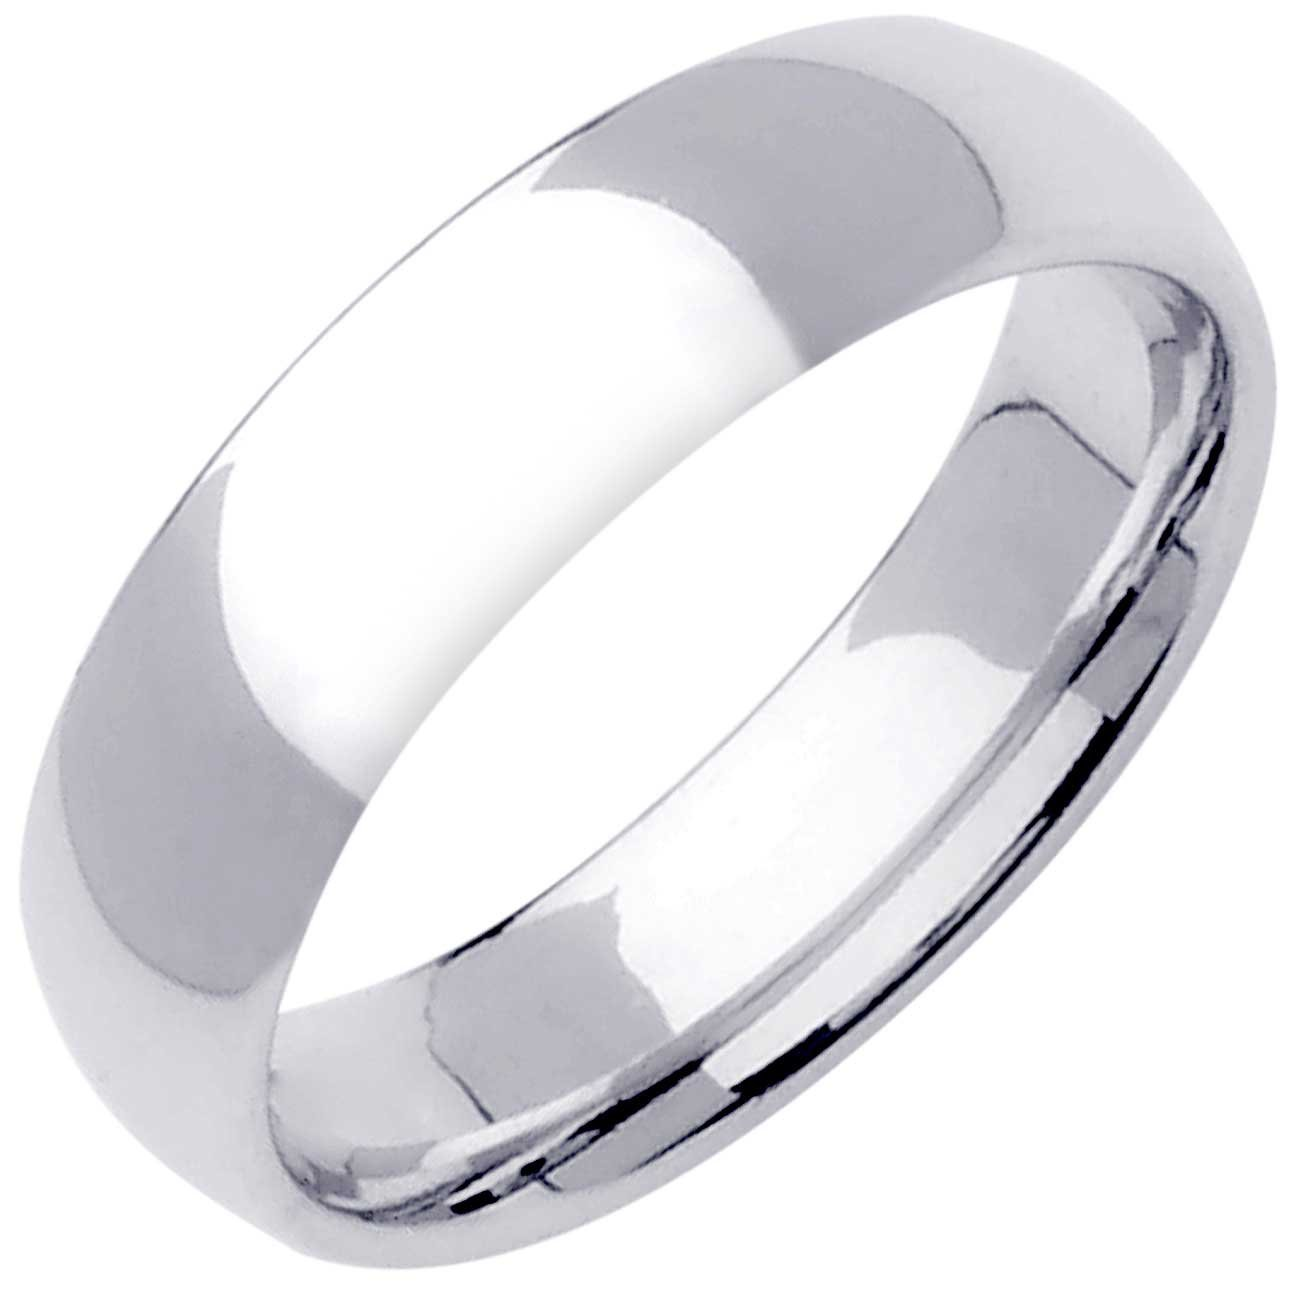 18K White Gold Traditional Classic Men's Comfort Fit Wedding Band (6mm) Size-9c1